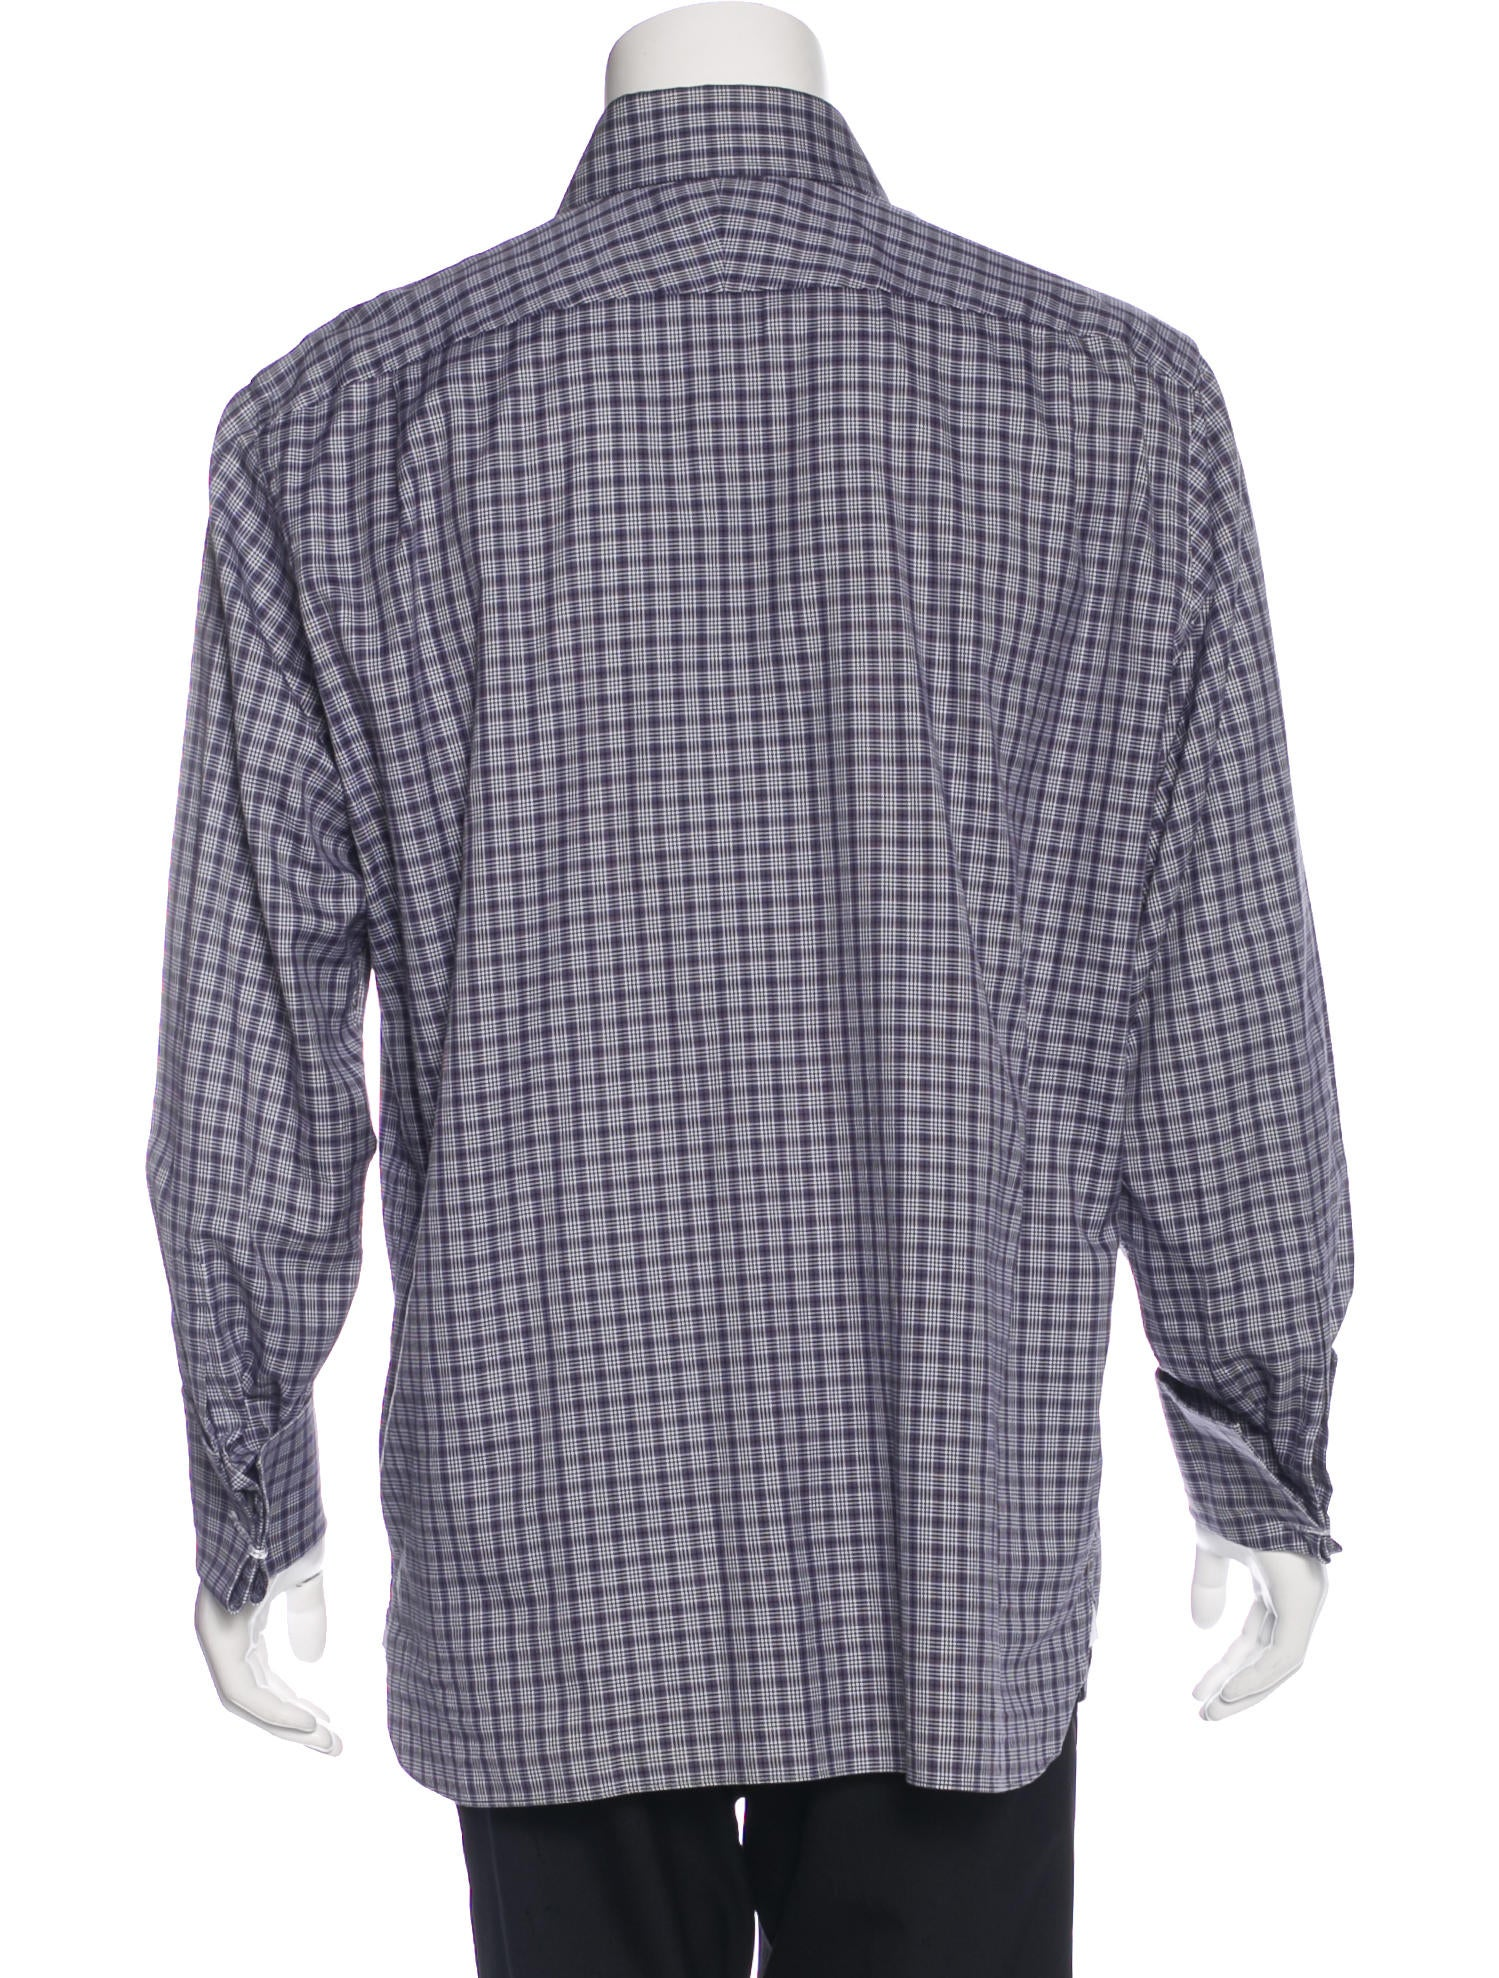 Tom ford plaid french cuff shirt clothing tom36788 for What is a french cuff shirt